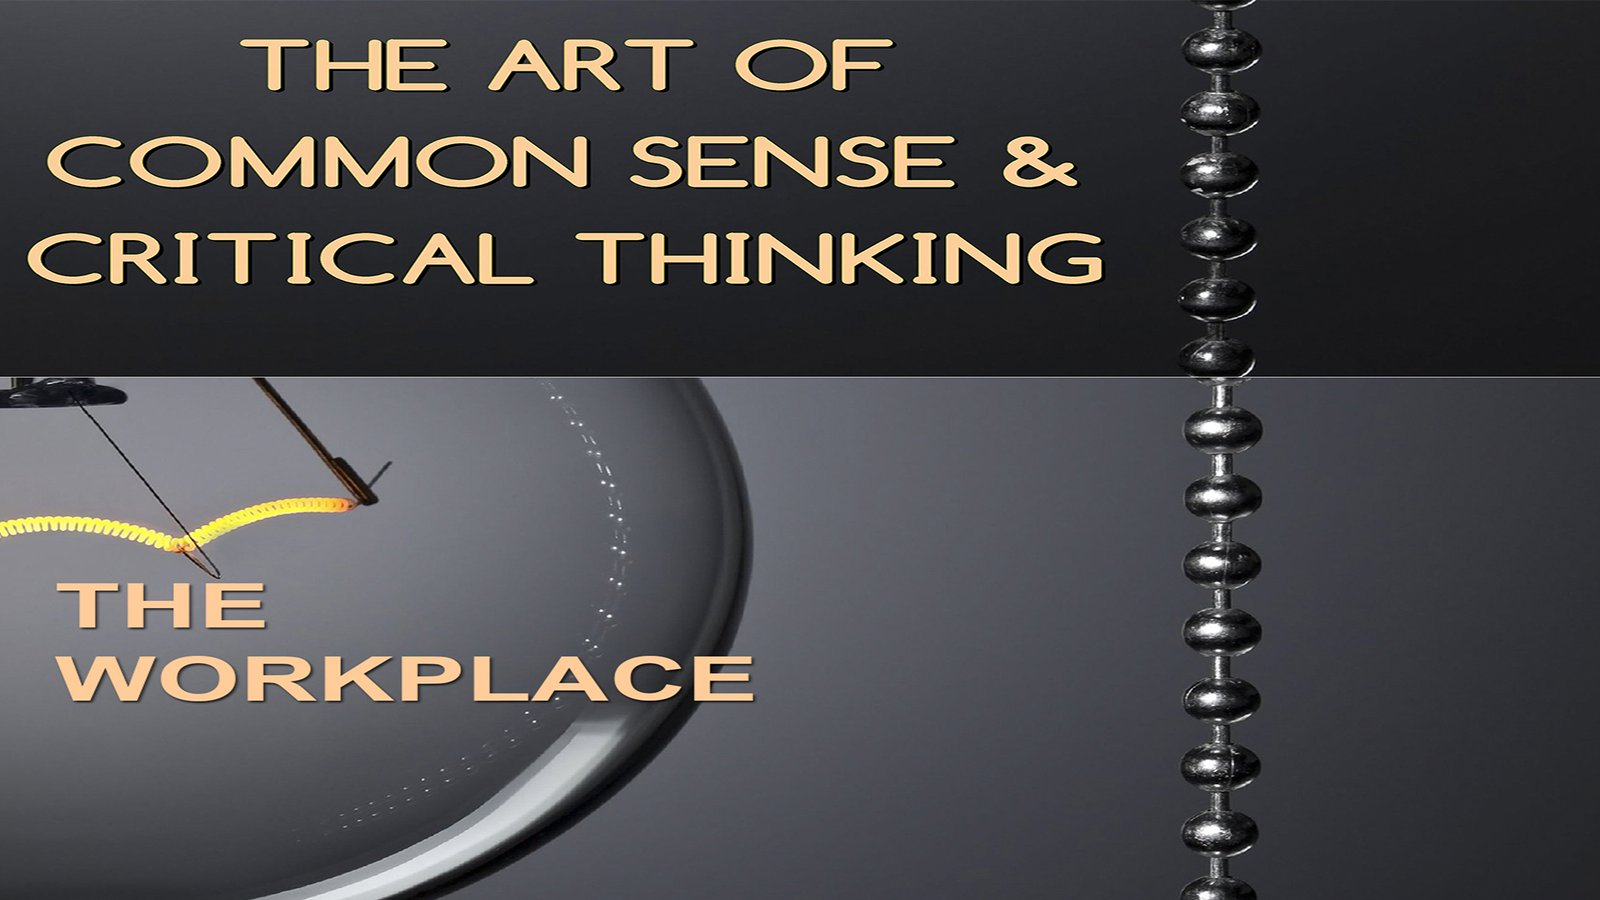 Employee Training The Art of Common Sense & Critical Thinking:The Workplace